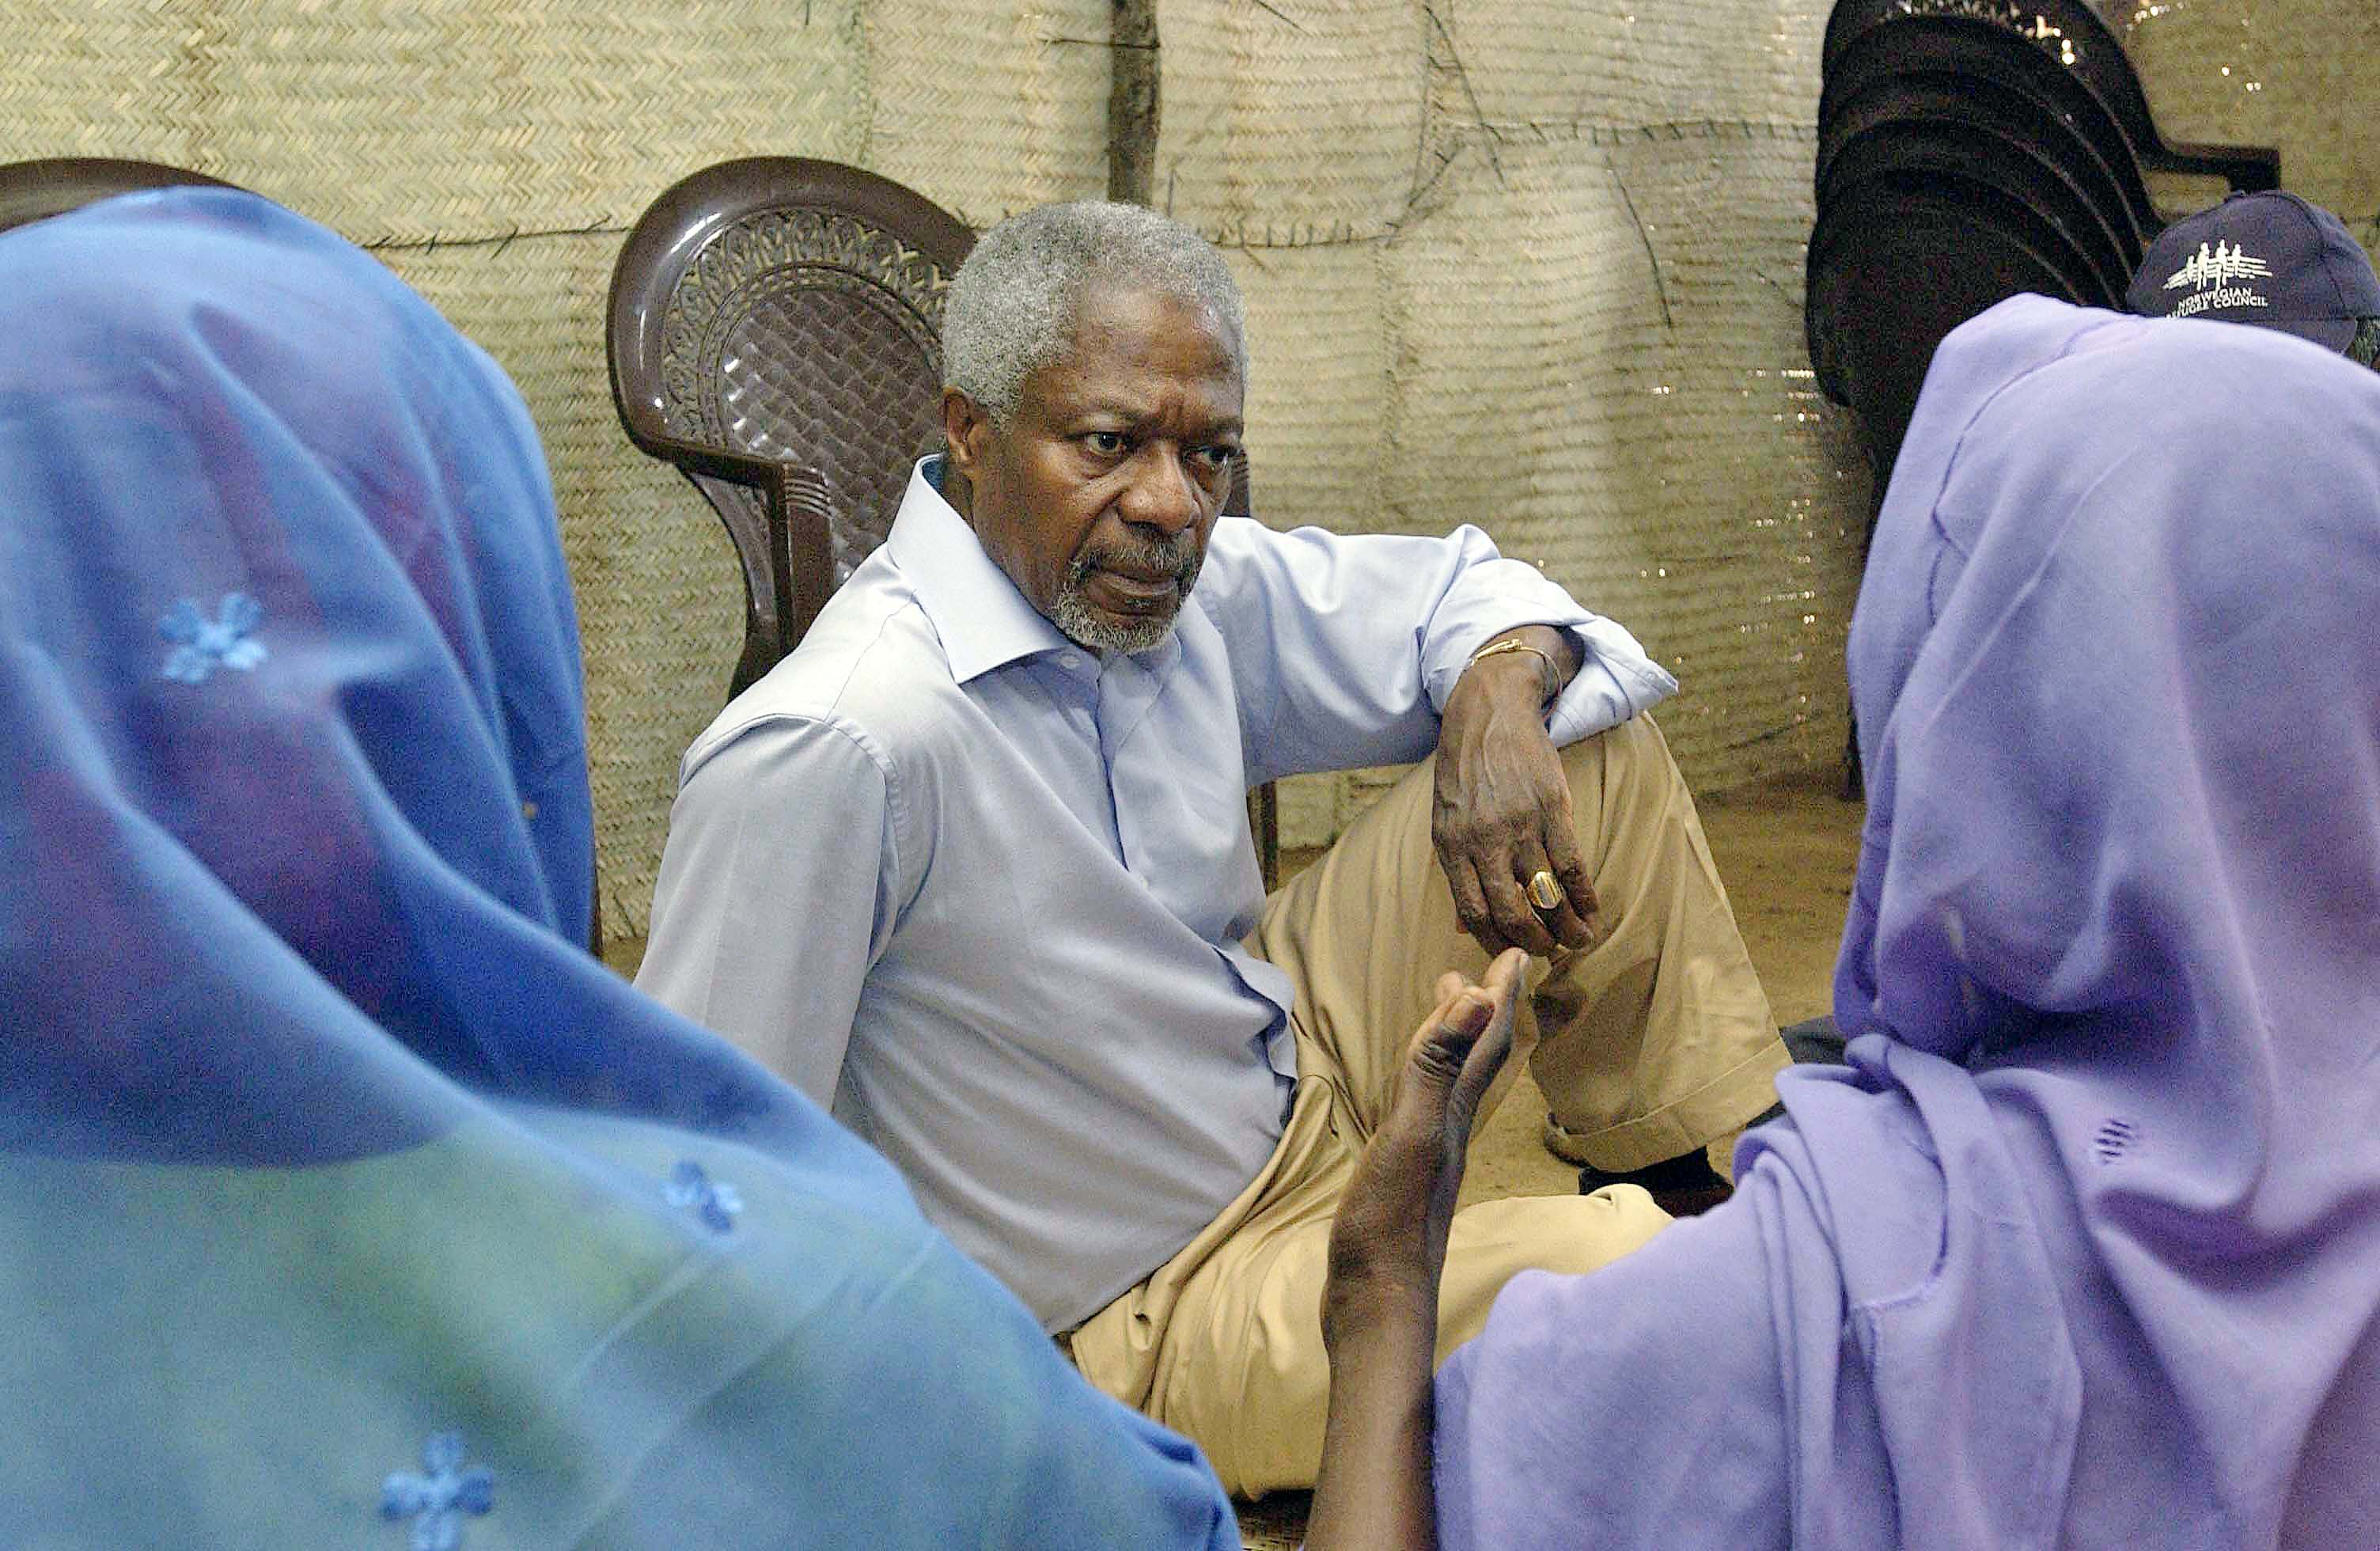 SG visits Kalma Camp in south Darfur, where aprox 100,000 internally displaced persons are living. SG meets with with women from the camp who air their grievences. For their safety, the image does not show their faces.